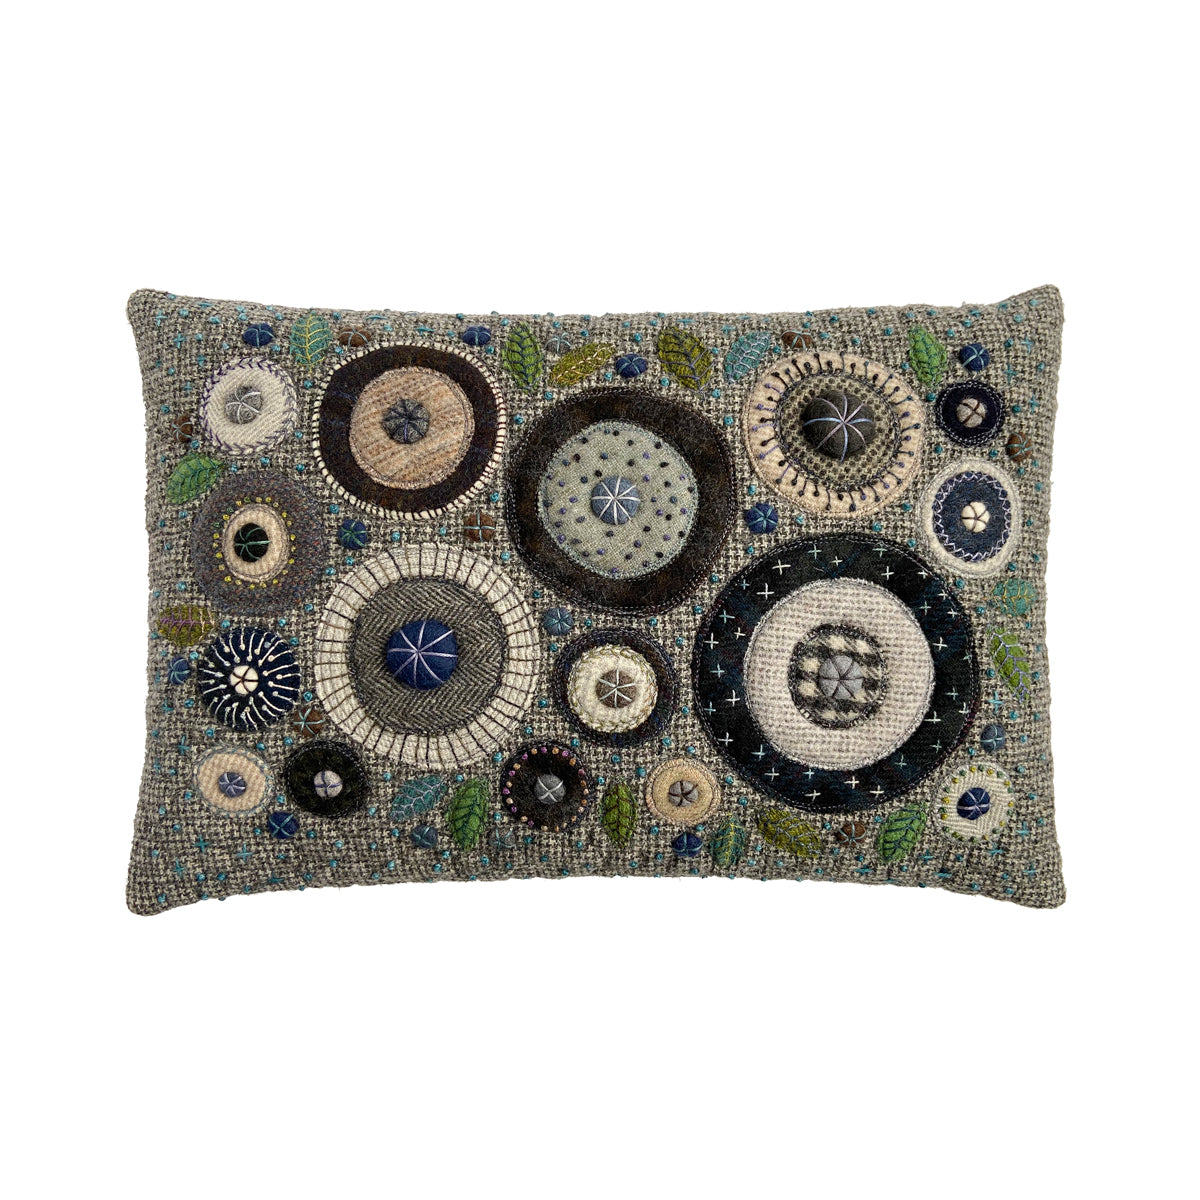 George Street Fancy Stitches Cushion • 12x18 B